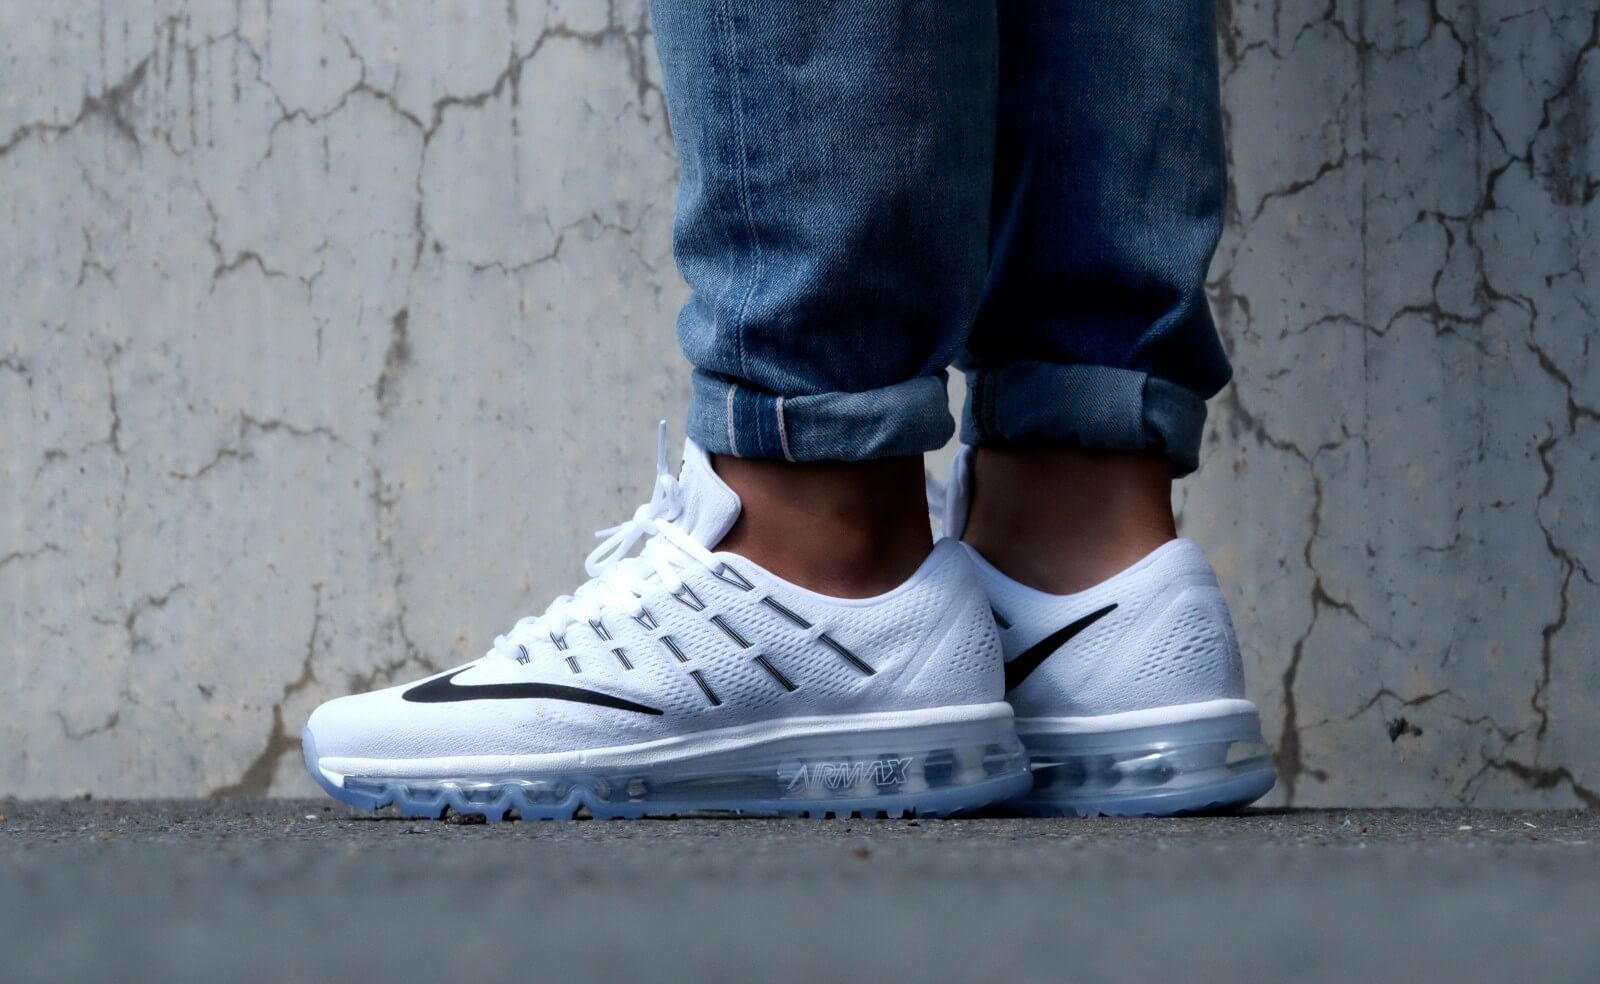 Nike Air Max 2016 Summit White Black 806771 100